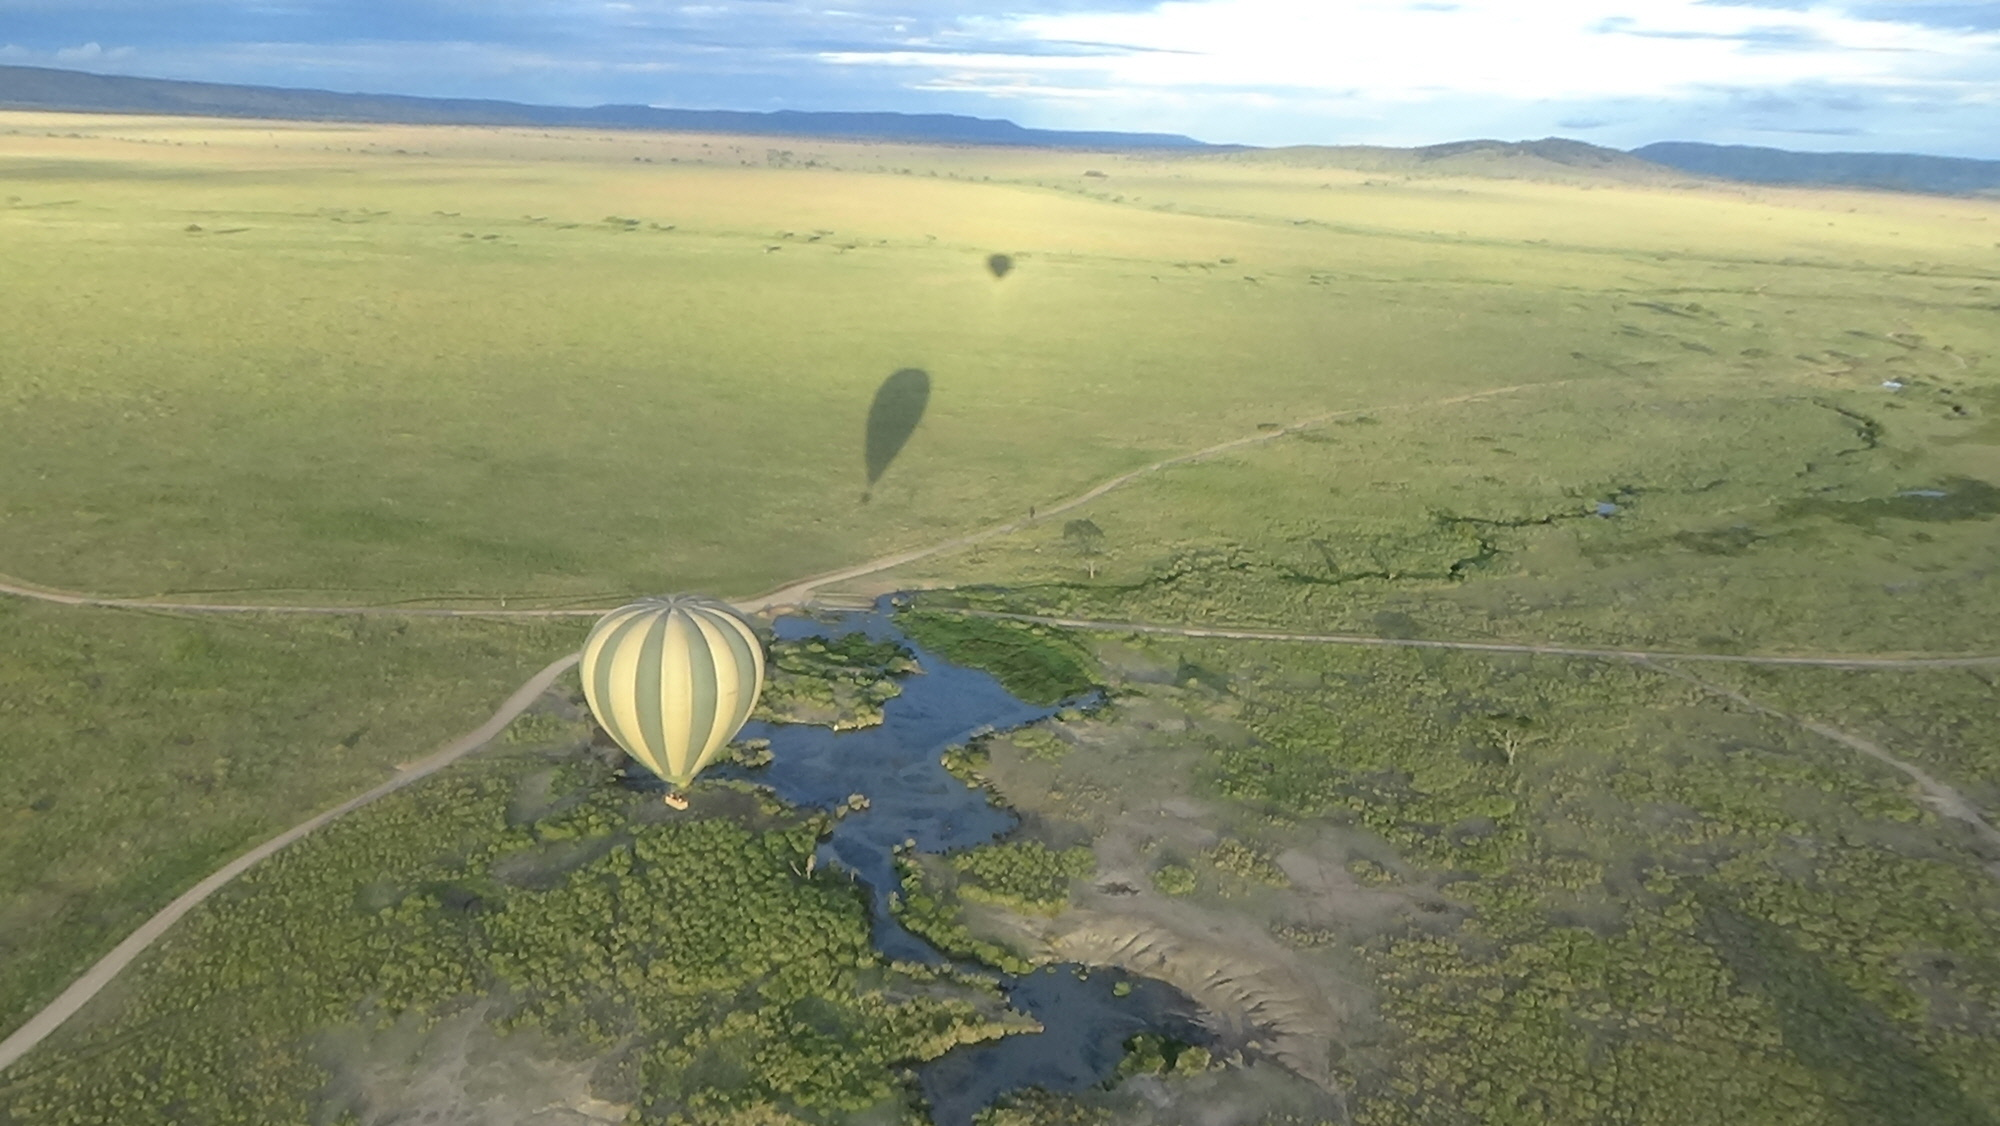 Balloning over the Serengeti